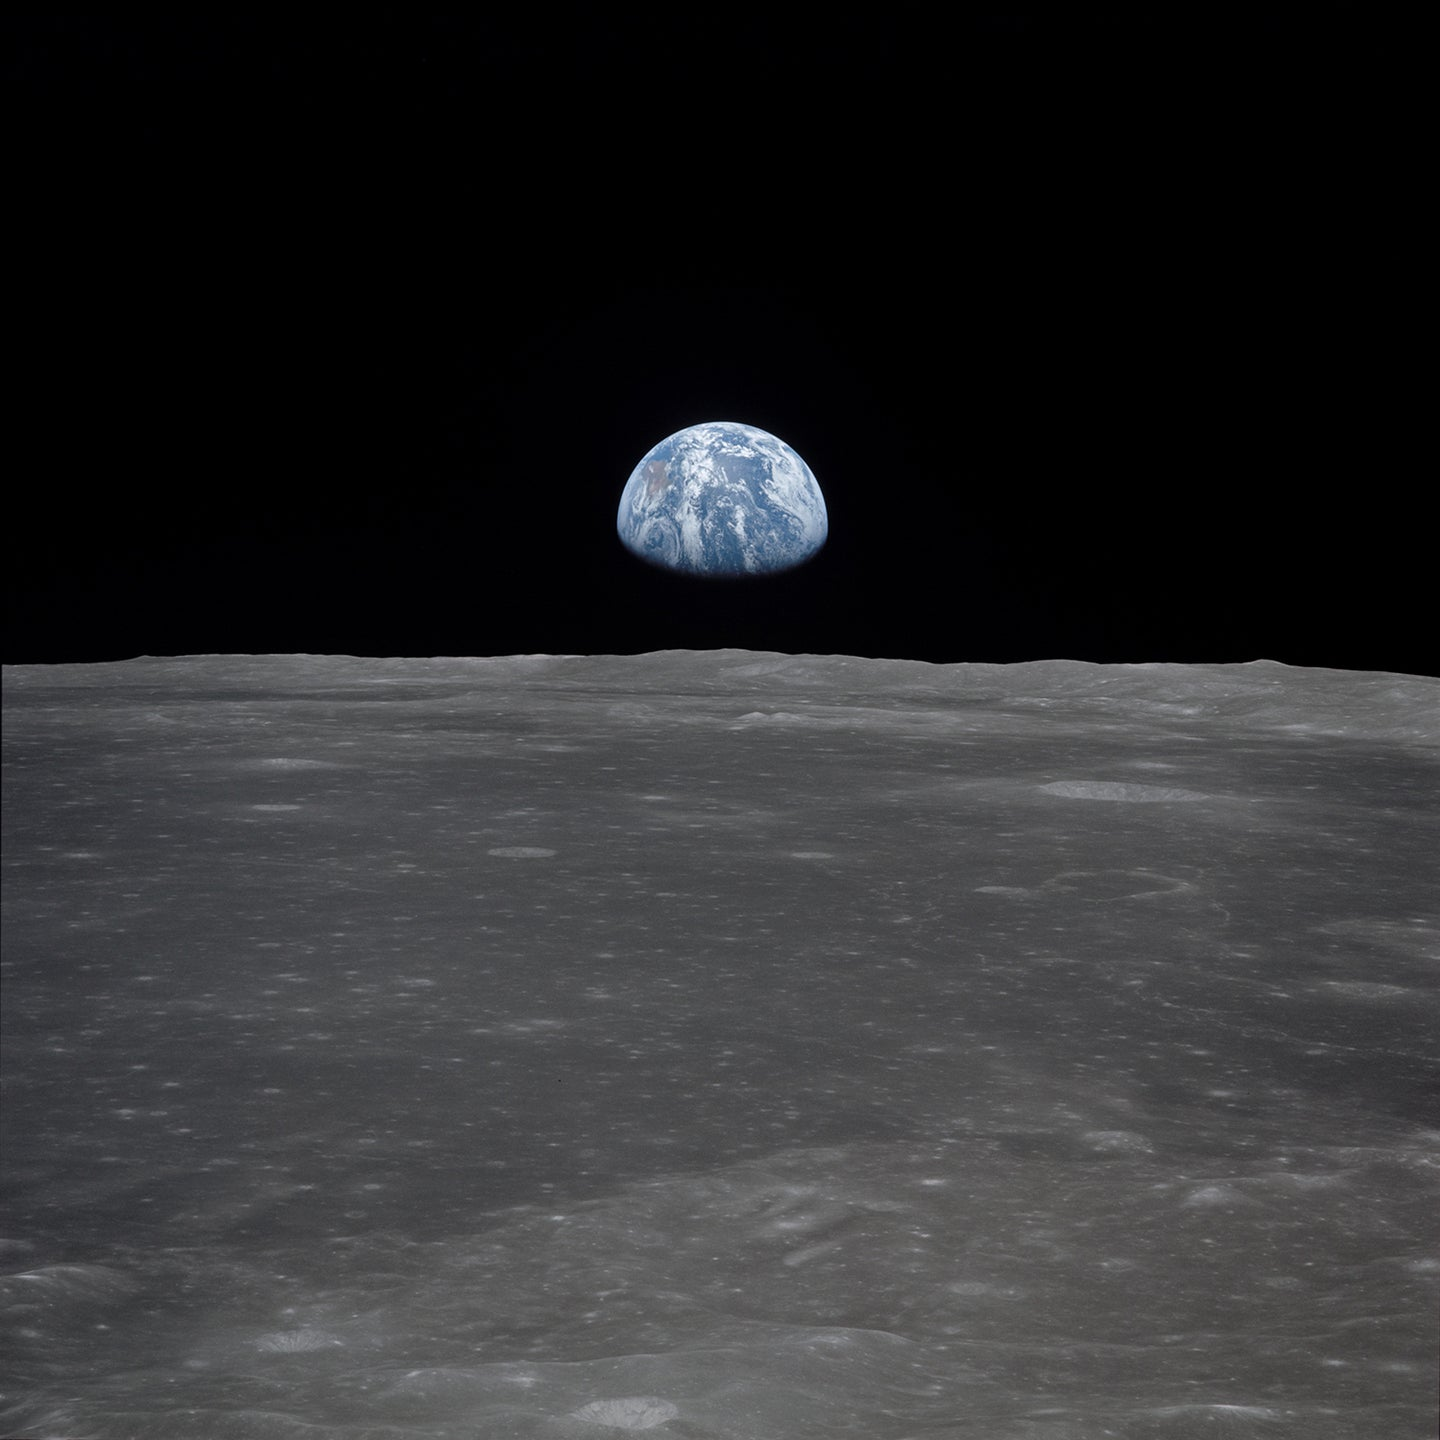 Fifty years ago Hasselblad sent the first cameras to the moon